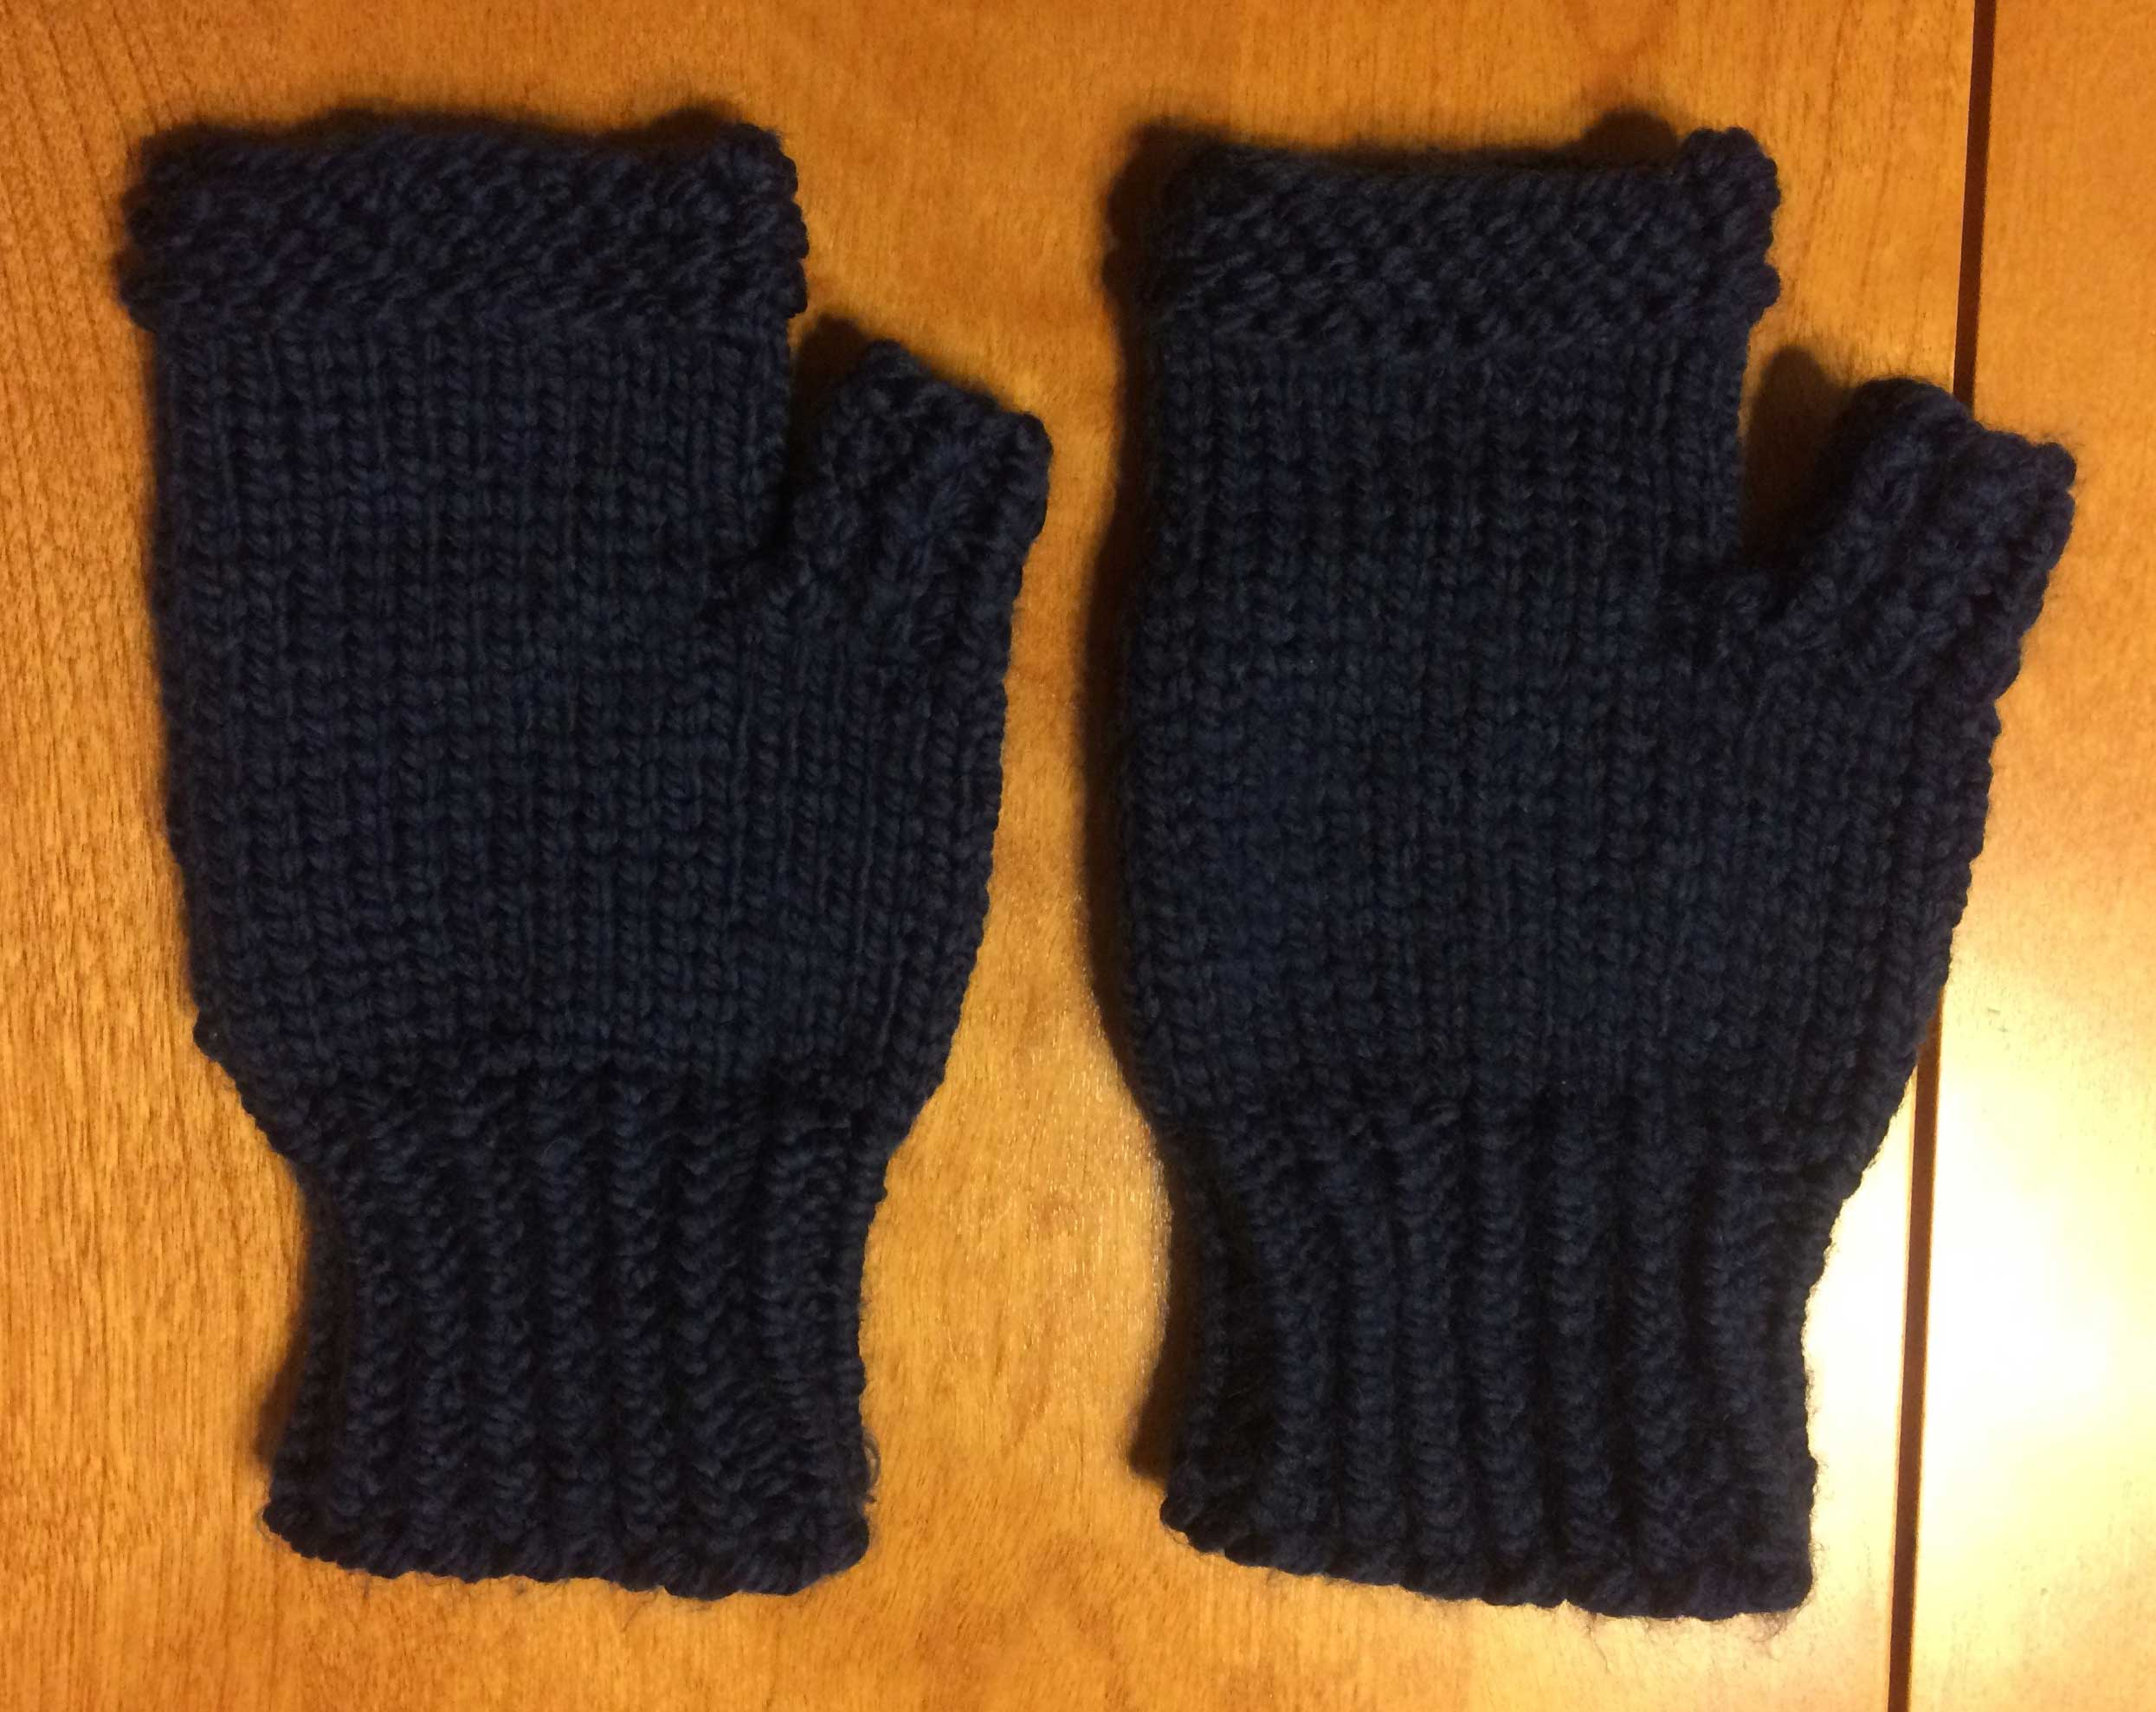 Knitted Fingerless Mitten - Beacon Tate - MetroArtist.ca